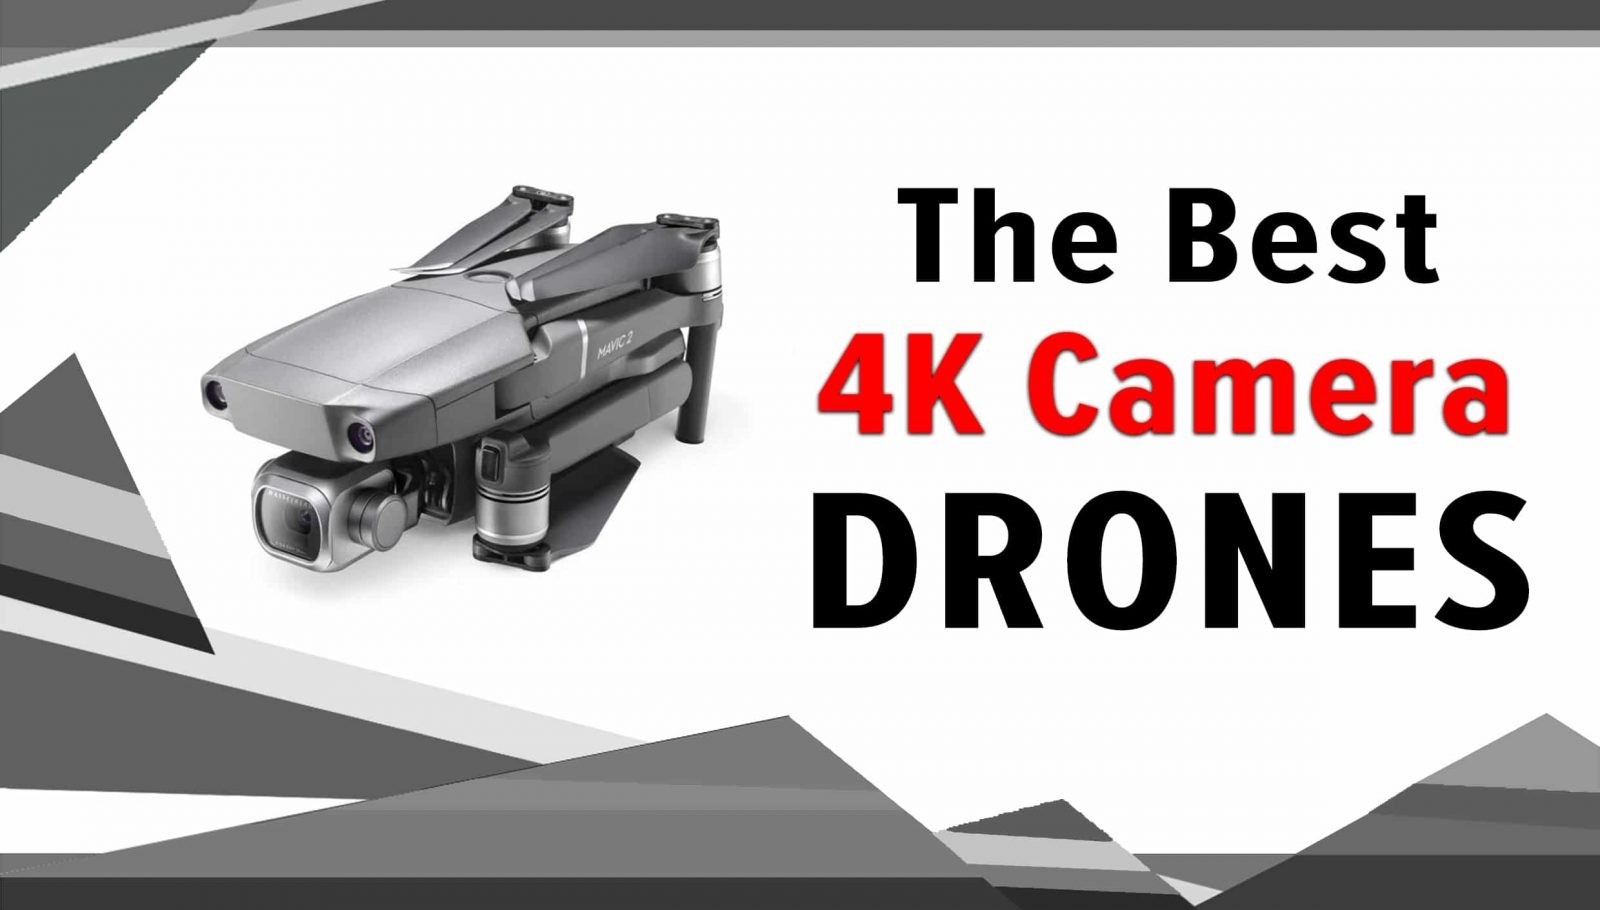 the best 4K camera drones